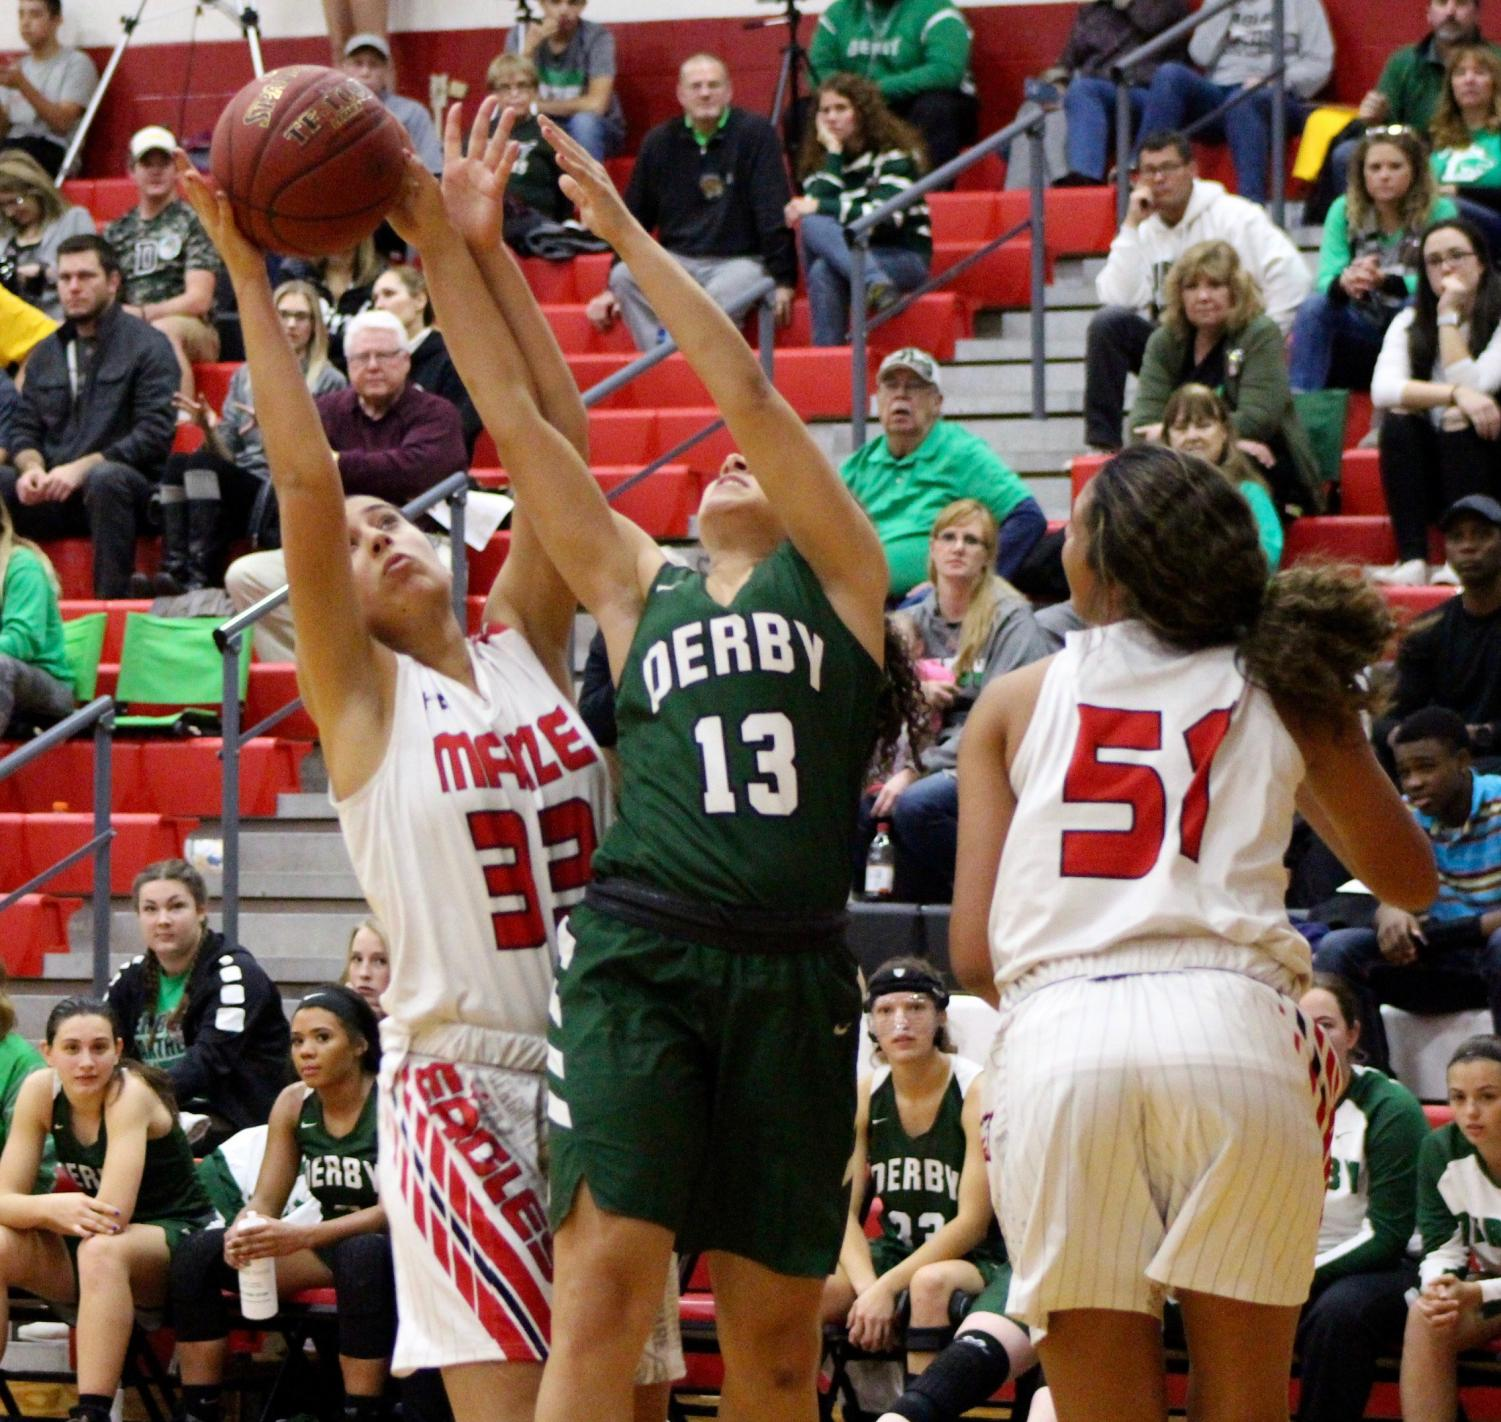 Senior+Ahdaya+Meyers+reaches+to+grab+the+ball+from+Maize%27s+possession.